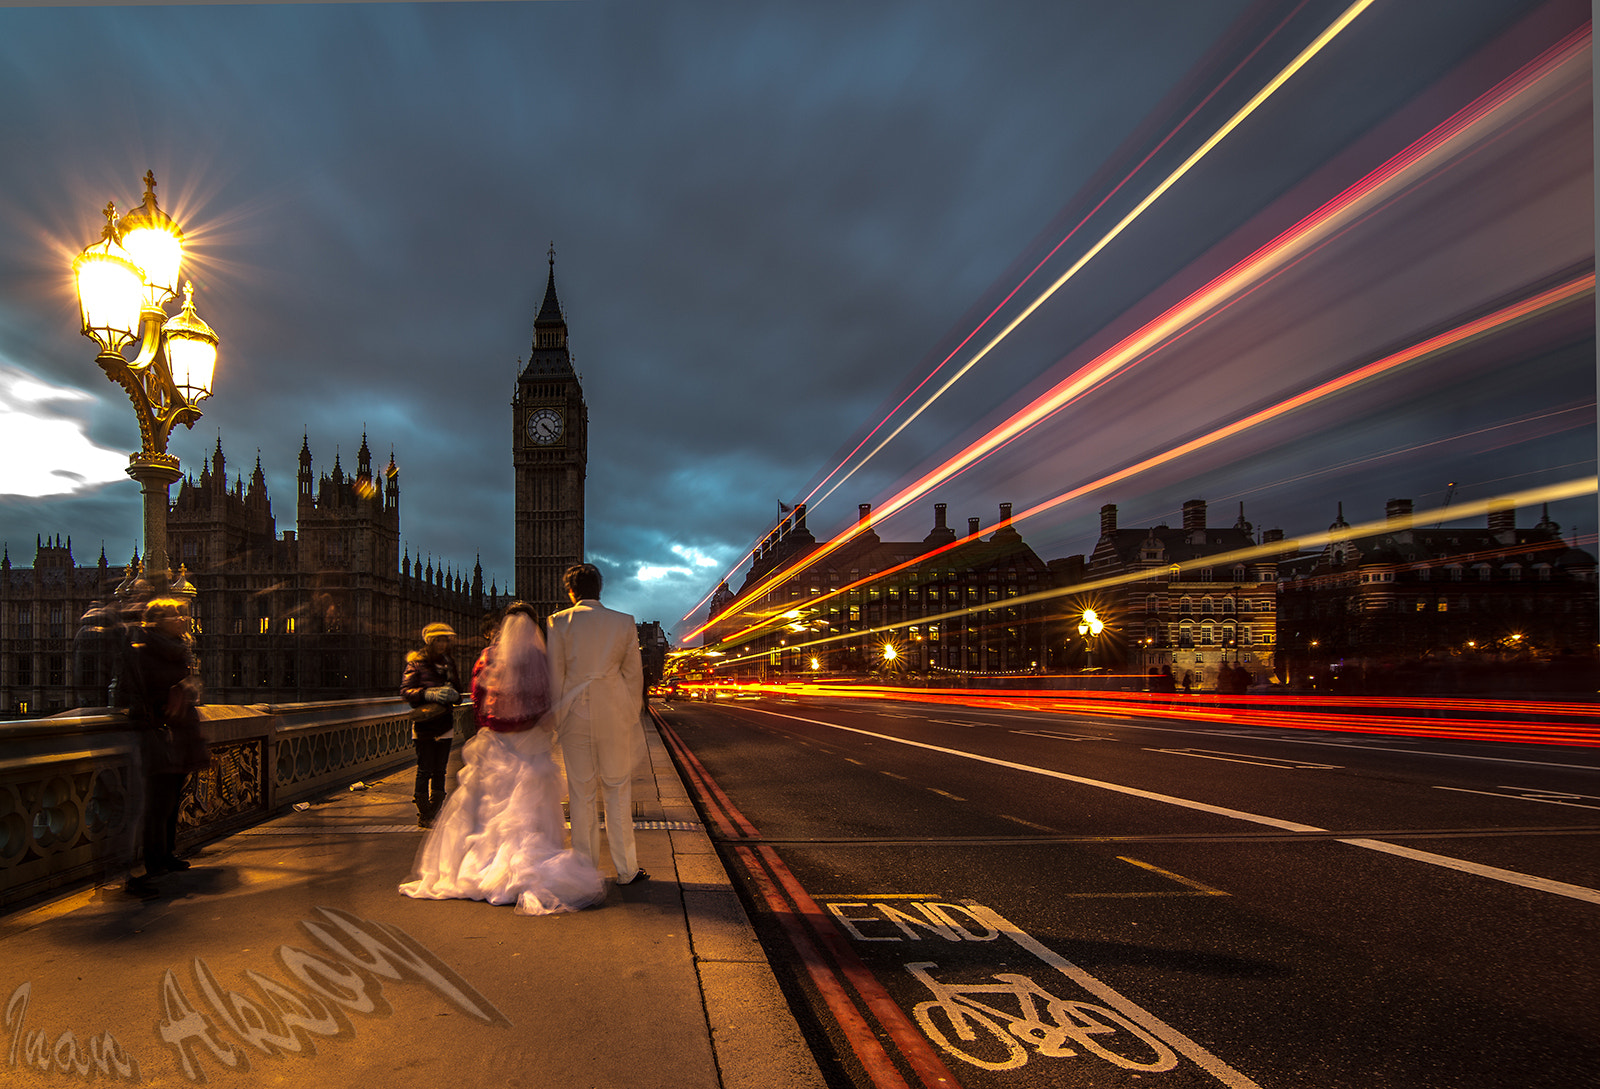 Photograph Newly Weds by Inan Aksoy on 500px